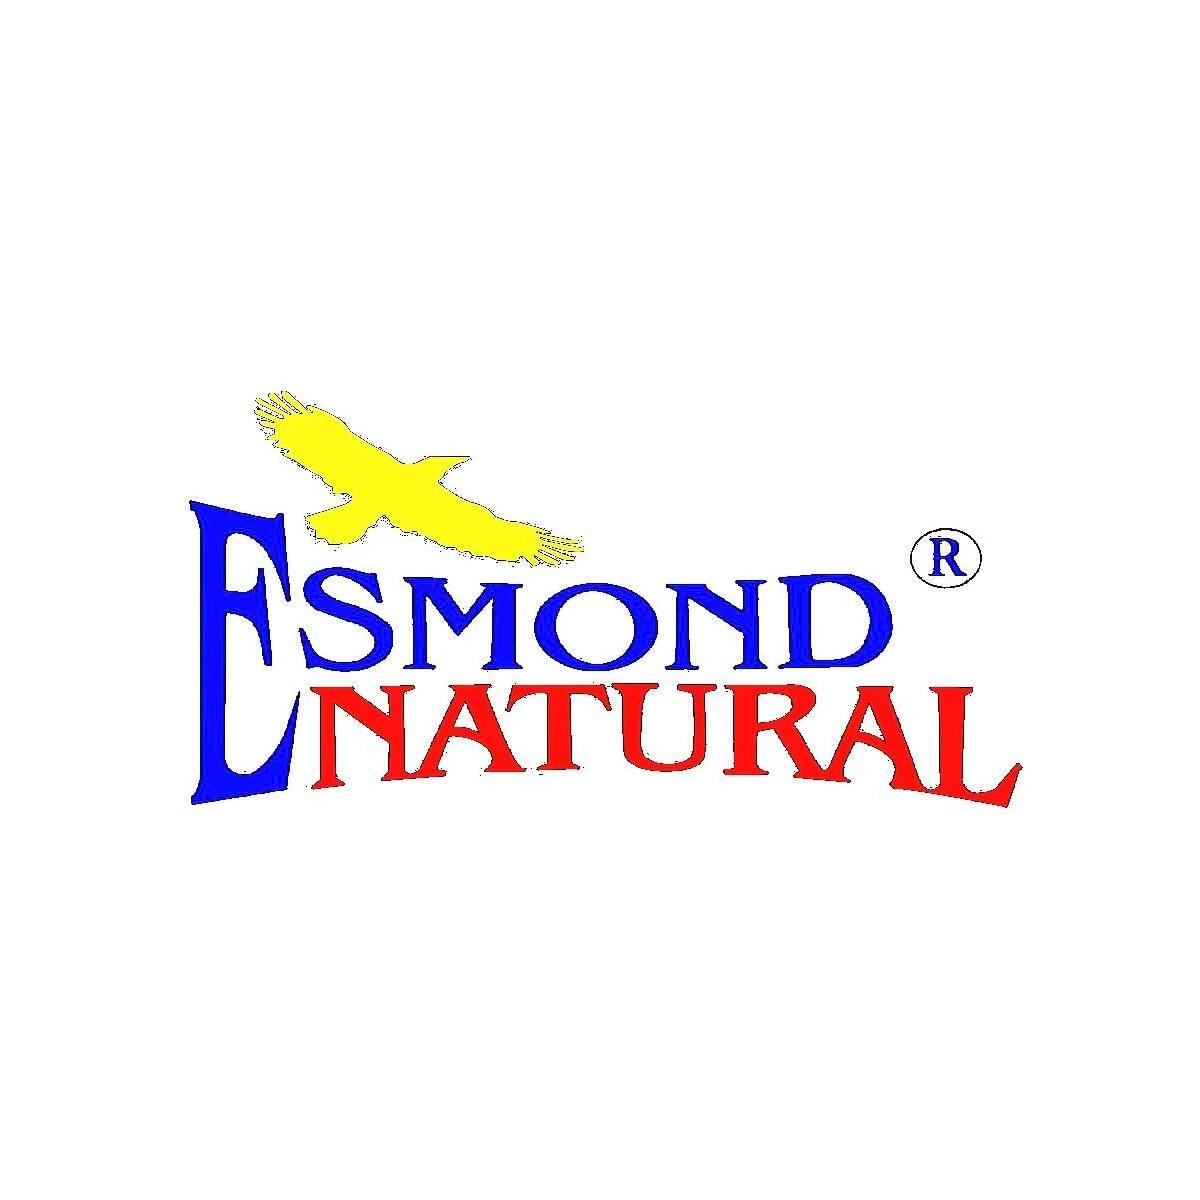 Esmond Natural: ENC Milk Minerals Complex (Bone Support), GMP, Natural Product Assn Certified, Made in USA-1500mg, 90 Tablets